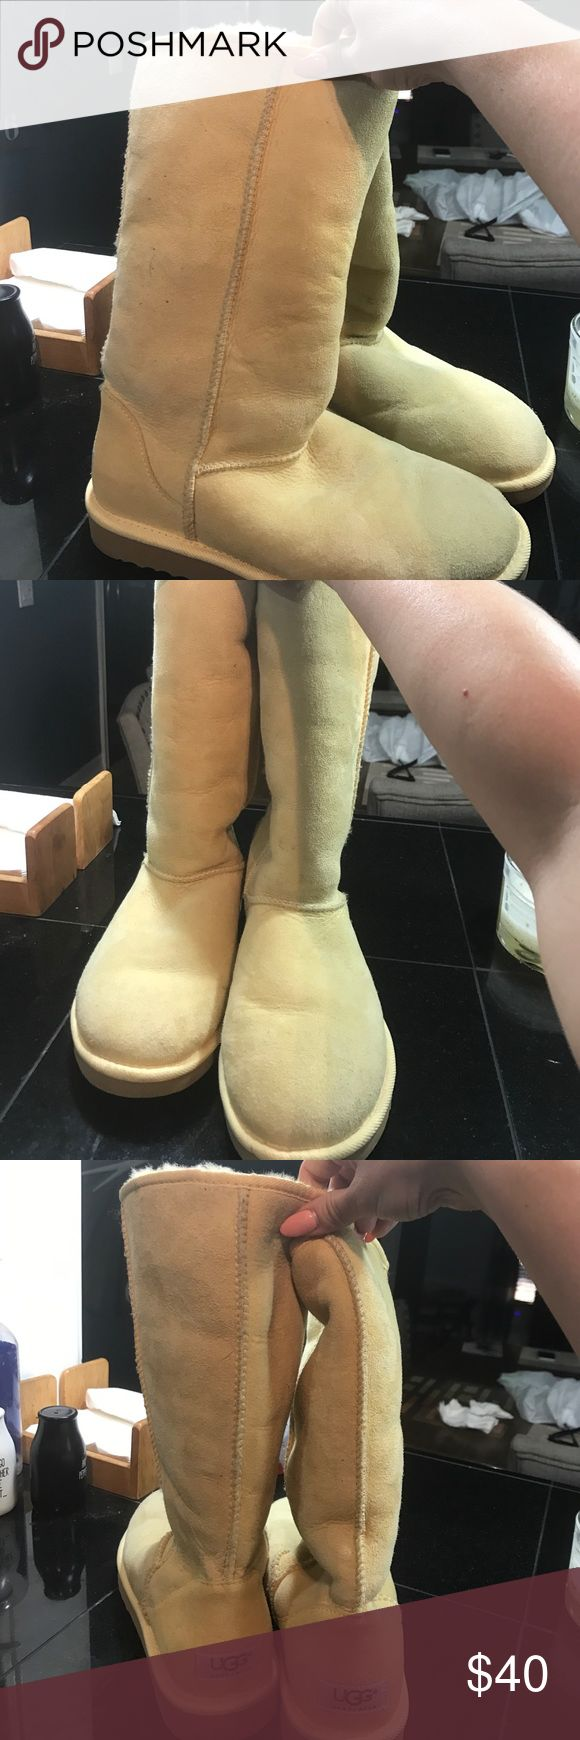 Women's canary yellow Ugg boots Women's size 8 boots in good condition. They could use a cleaning but otherwise they are great. Too hot for Florida weather UGG Shoes Winter & Rain Boots